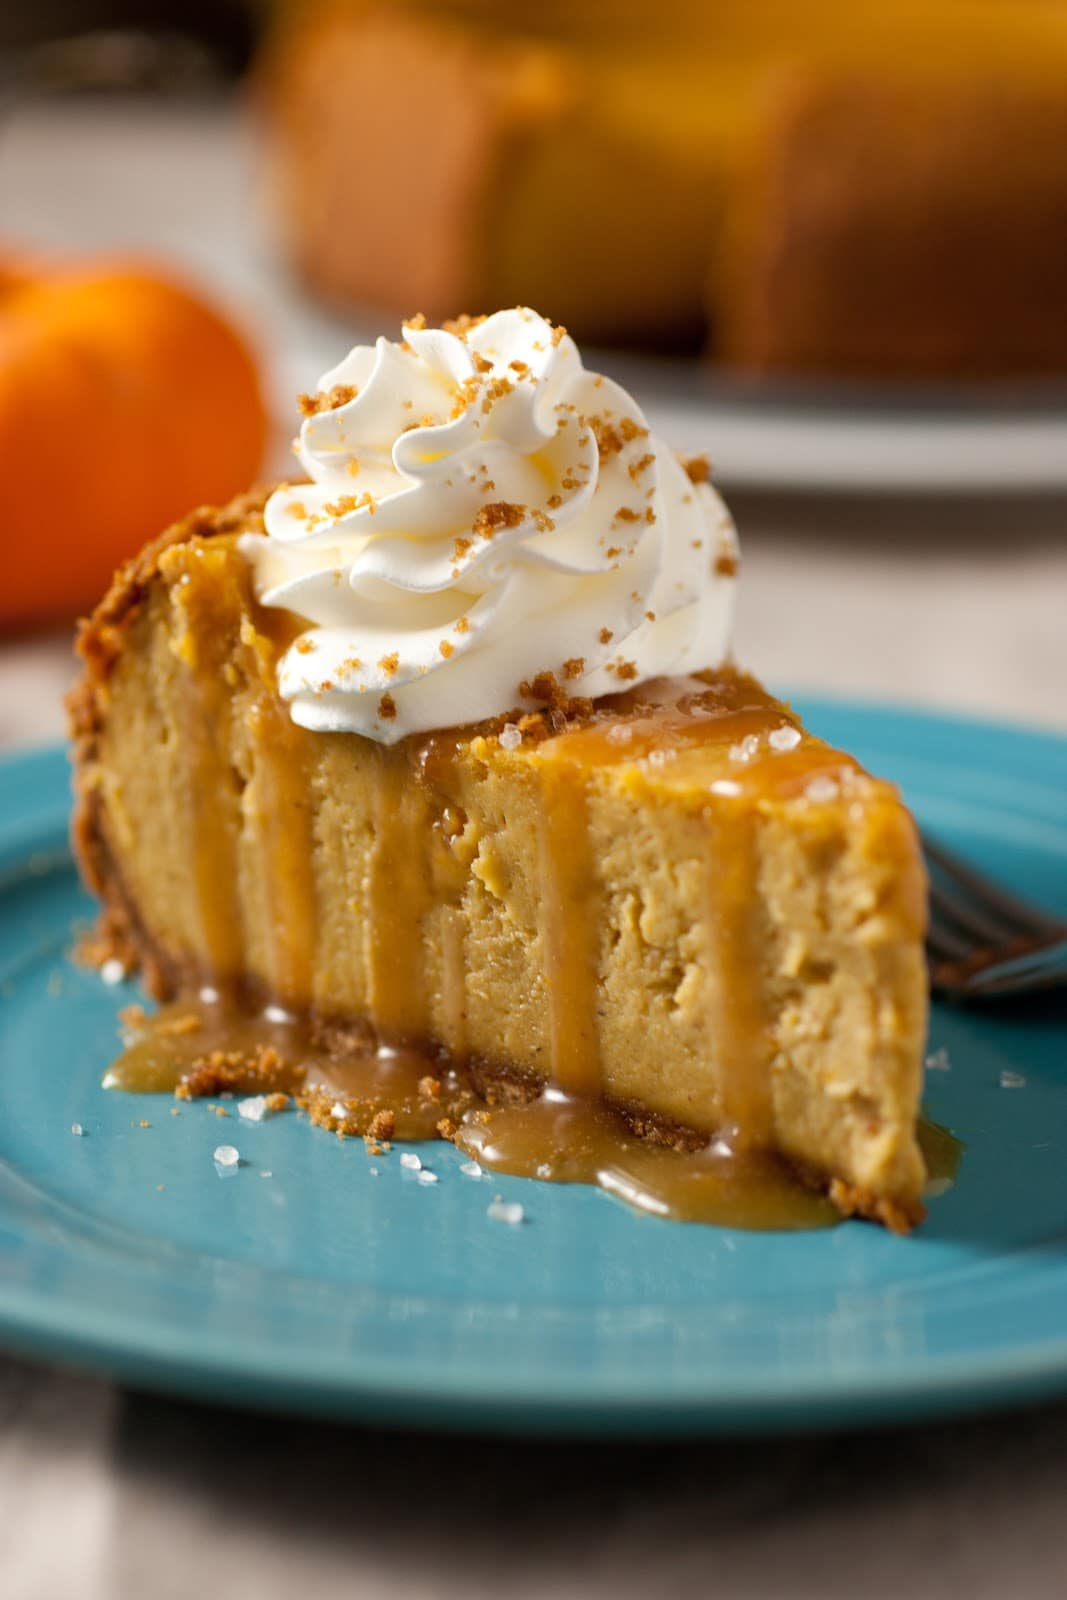 Pumpkin Cheesecake With Salted Caramel Sauce Cooking Classy